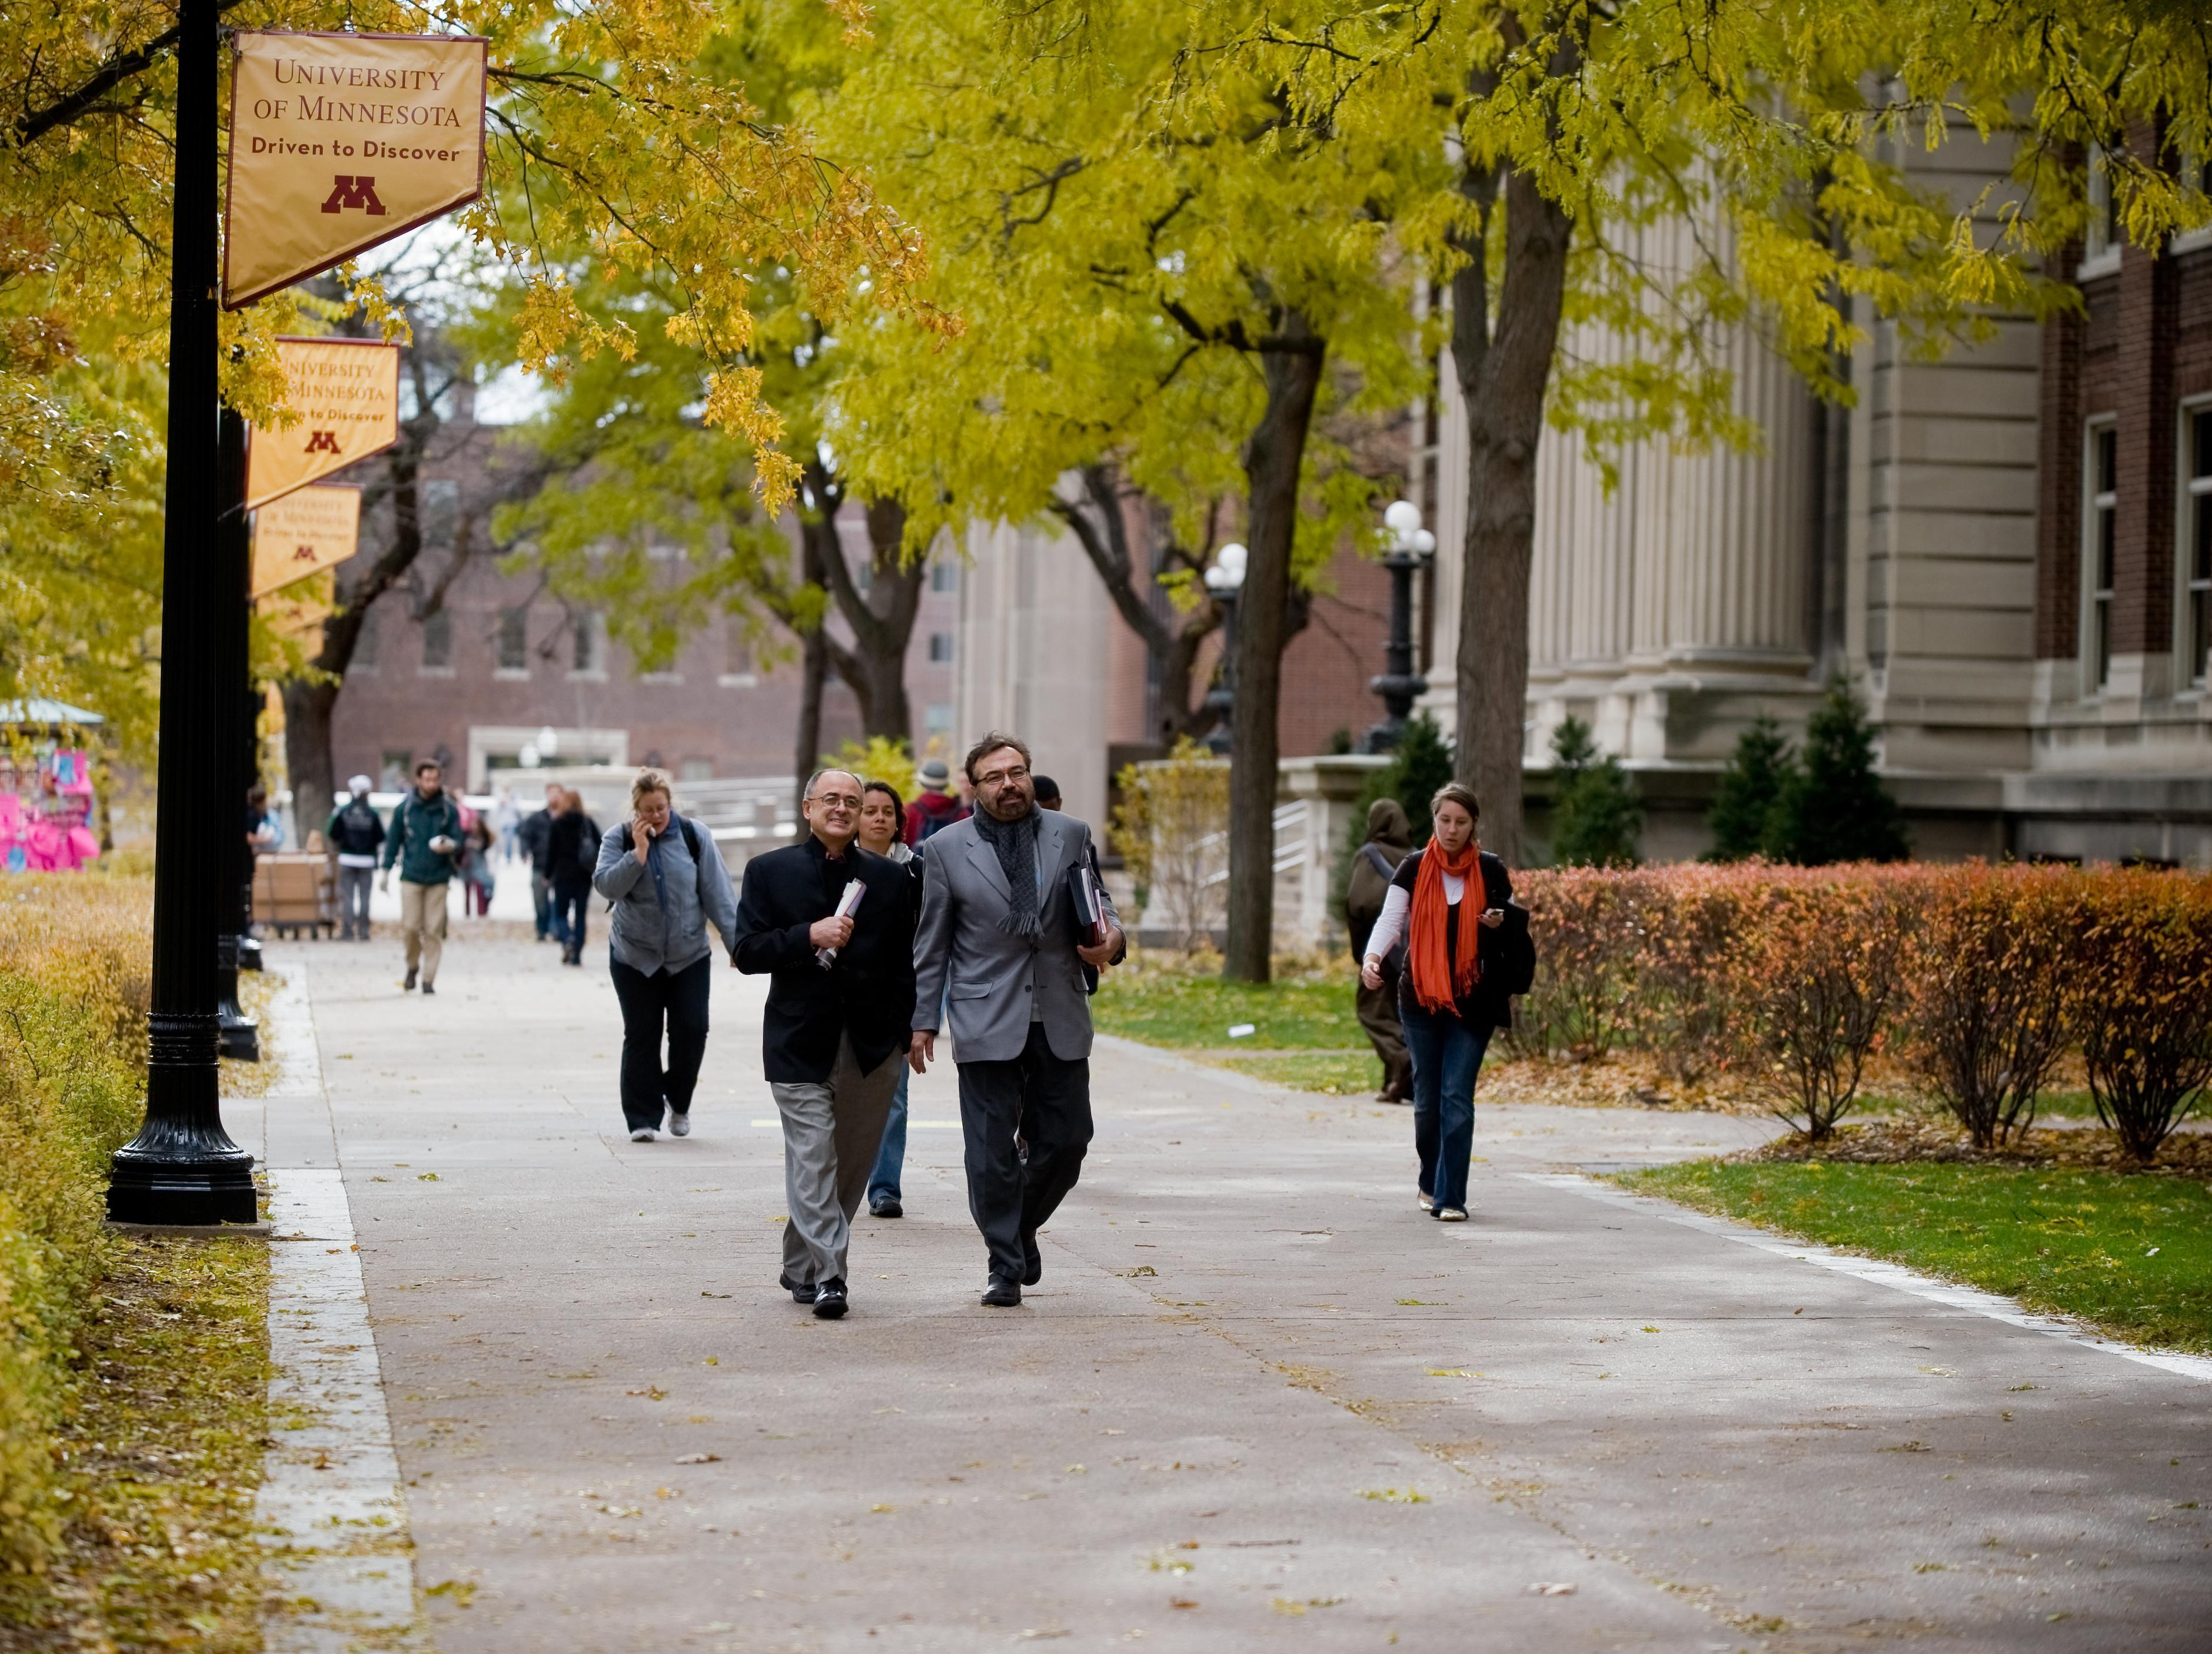 People walking on the University of Minnesota East Bank campus